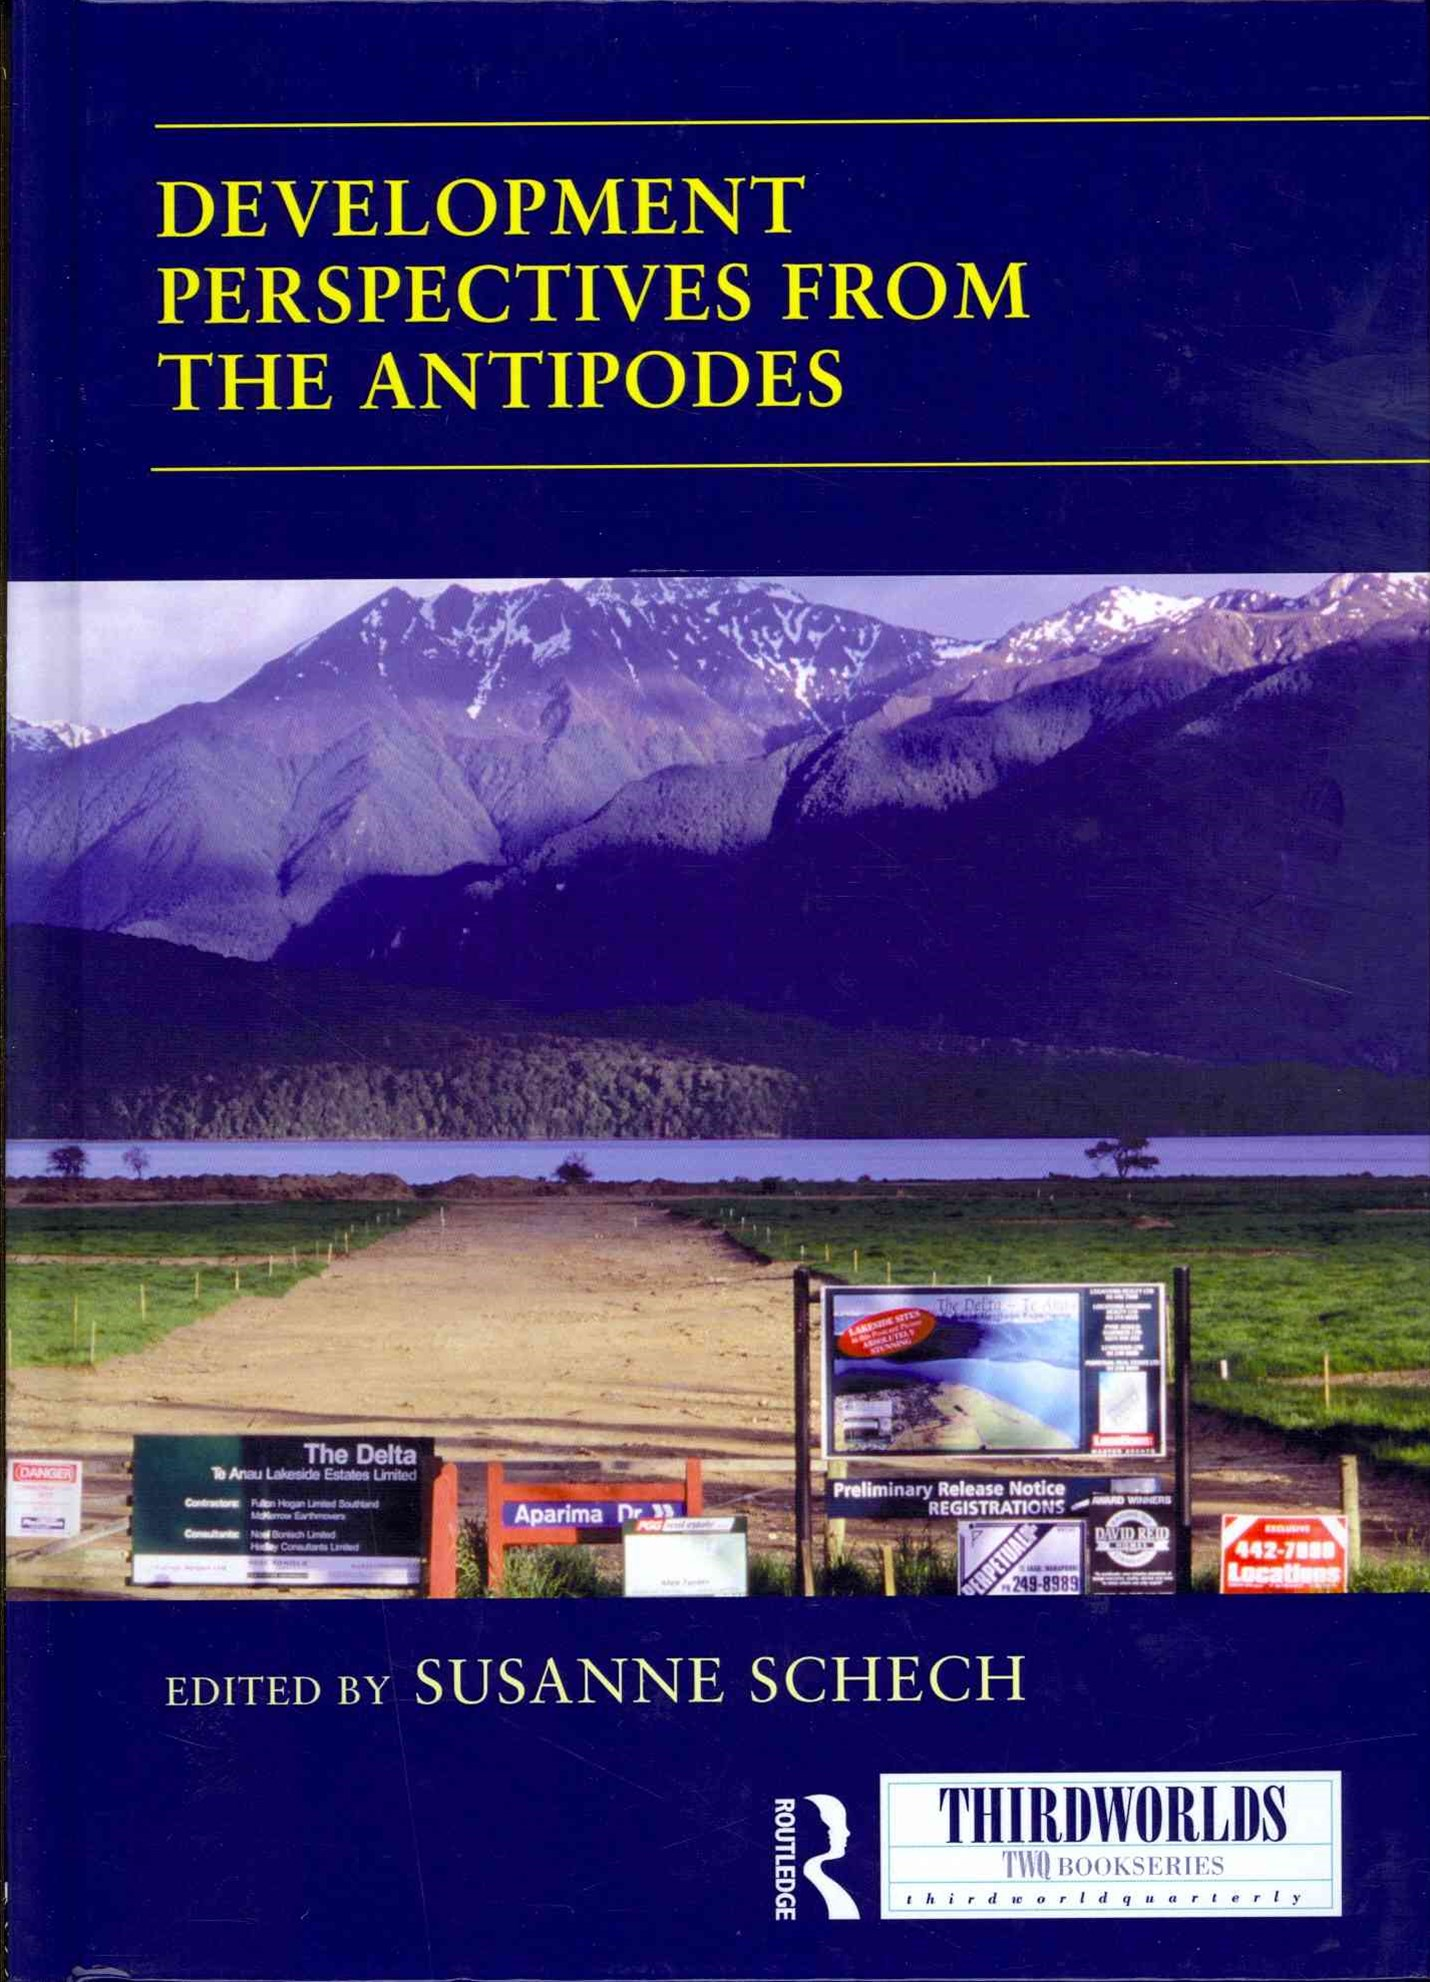 Development Perspectives from the Antipodes